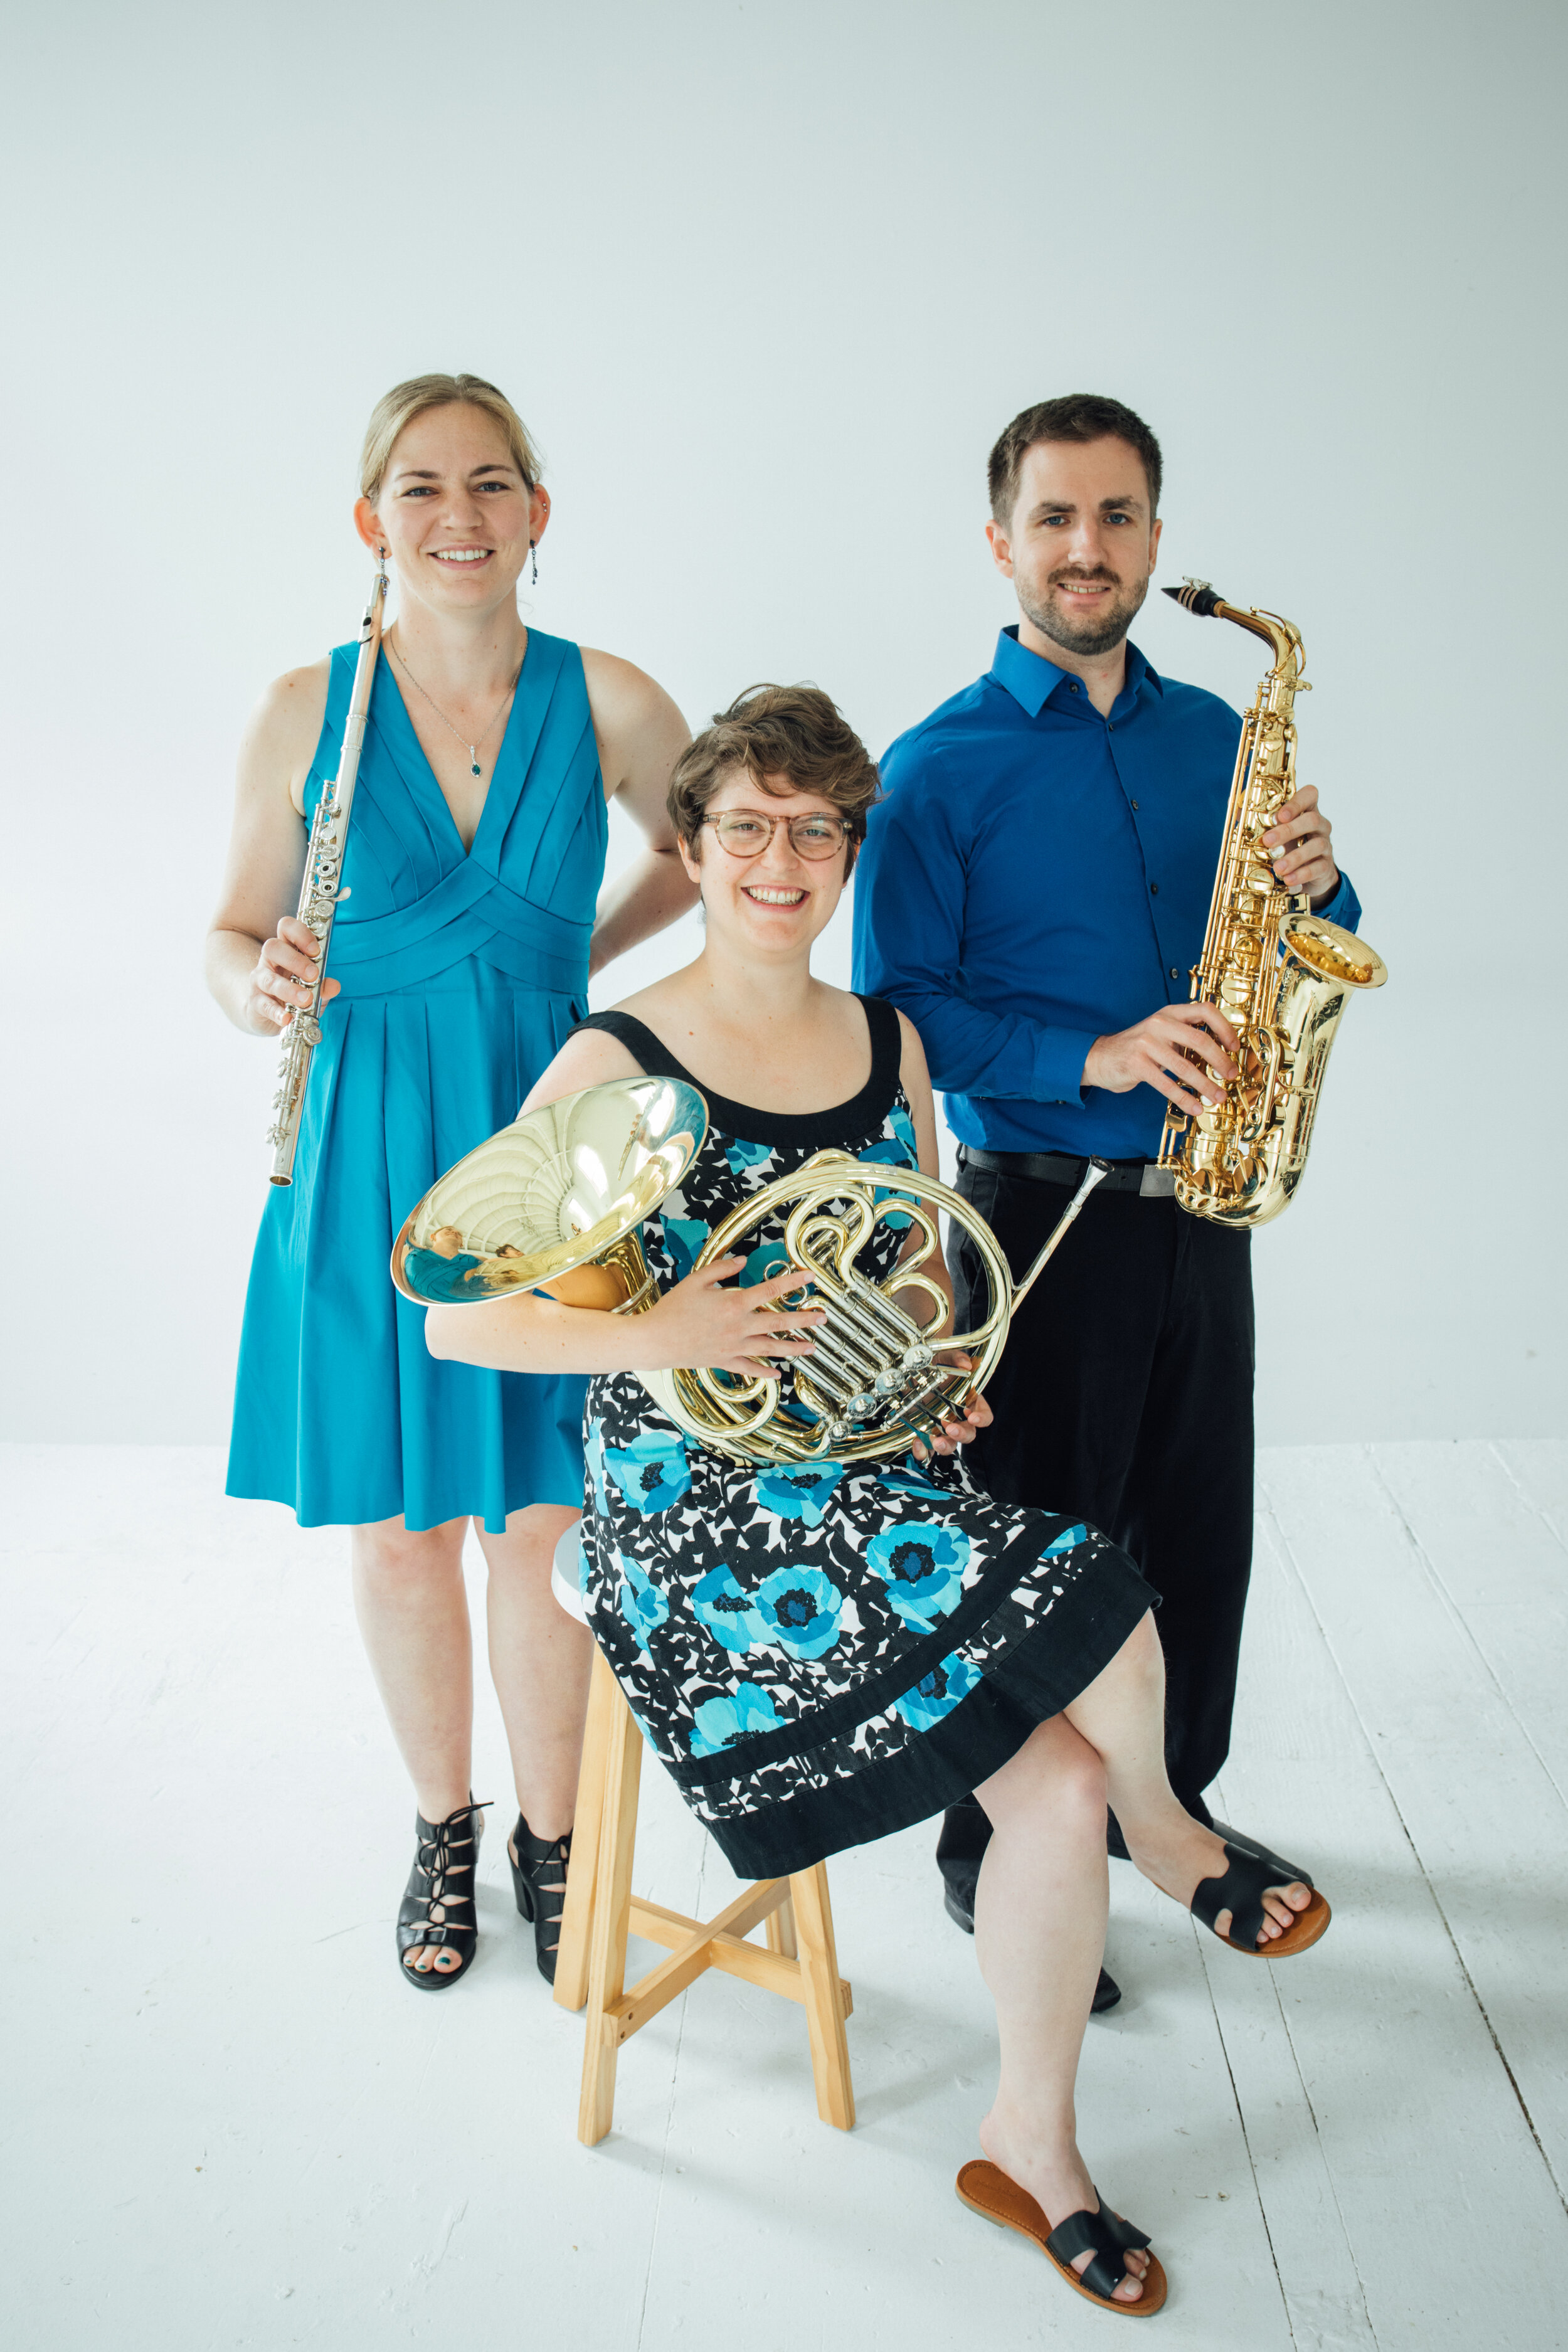 Onomatopoeia - Onomatopoeia (all alternate spellings accepted) is Cassie Lear, flutes; Soren Hamm saxophones; and Rebecca Olason, French horn. Faced with a menagerie of seldom-paired instruments and no repertoire whatsoever, these three award-winning soloists and longtime friends came together anyways to create a new kind of chamber ensemble. The result is a versatile, 21st century sound that makes everything – from classical to folk to contemporary music – sound fresh and new.Onomatopoeia has many upcoming shows; check the calendar for more information. We are currently working on our local composers project; a recital series and recording of 10 new pieces commissioned from local composers. More information at www.onomatopoeiatrio.com